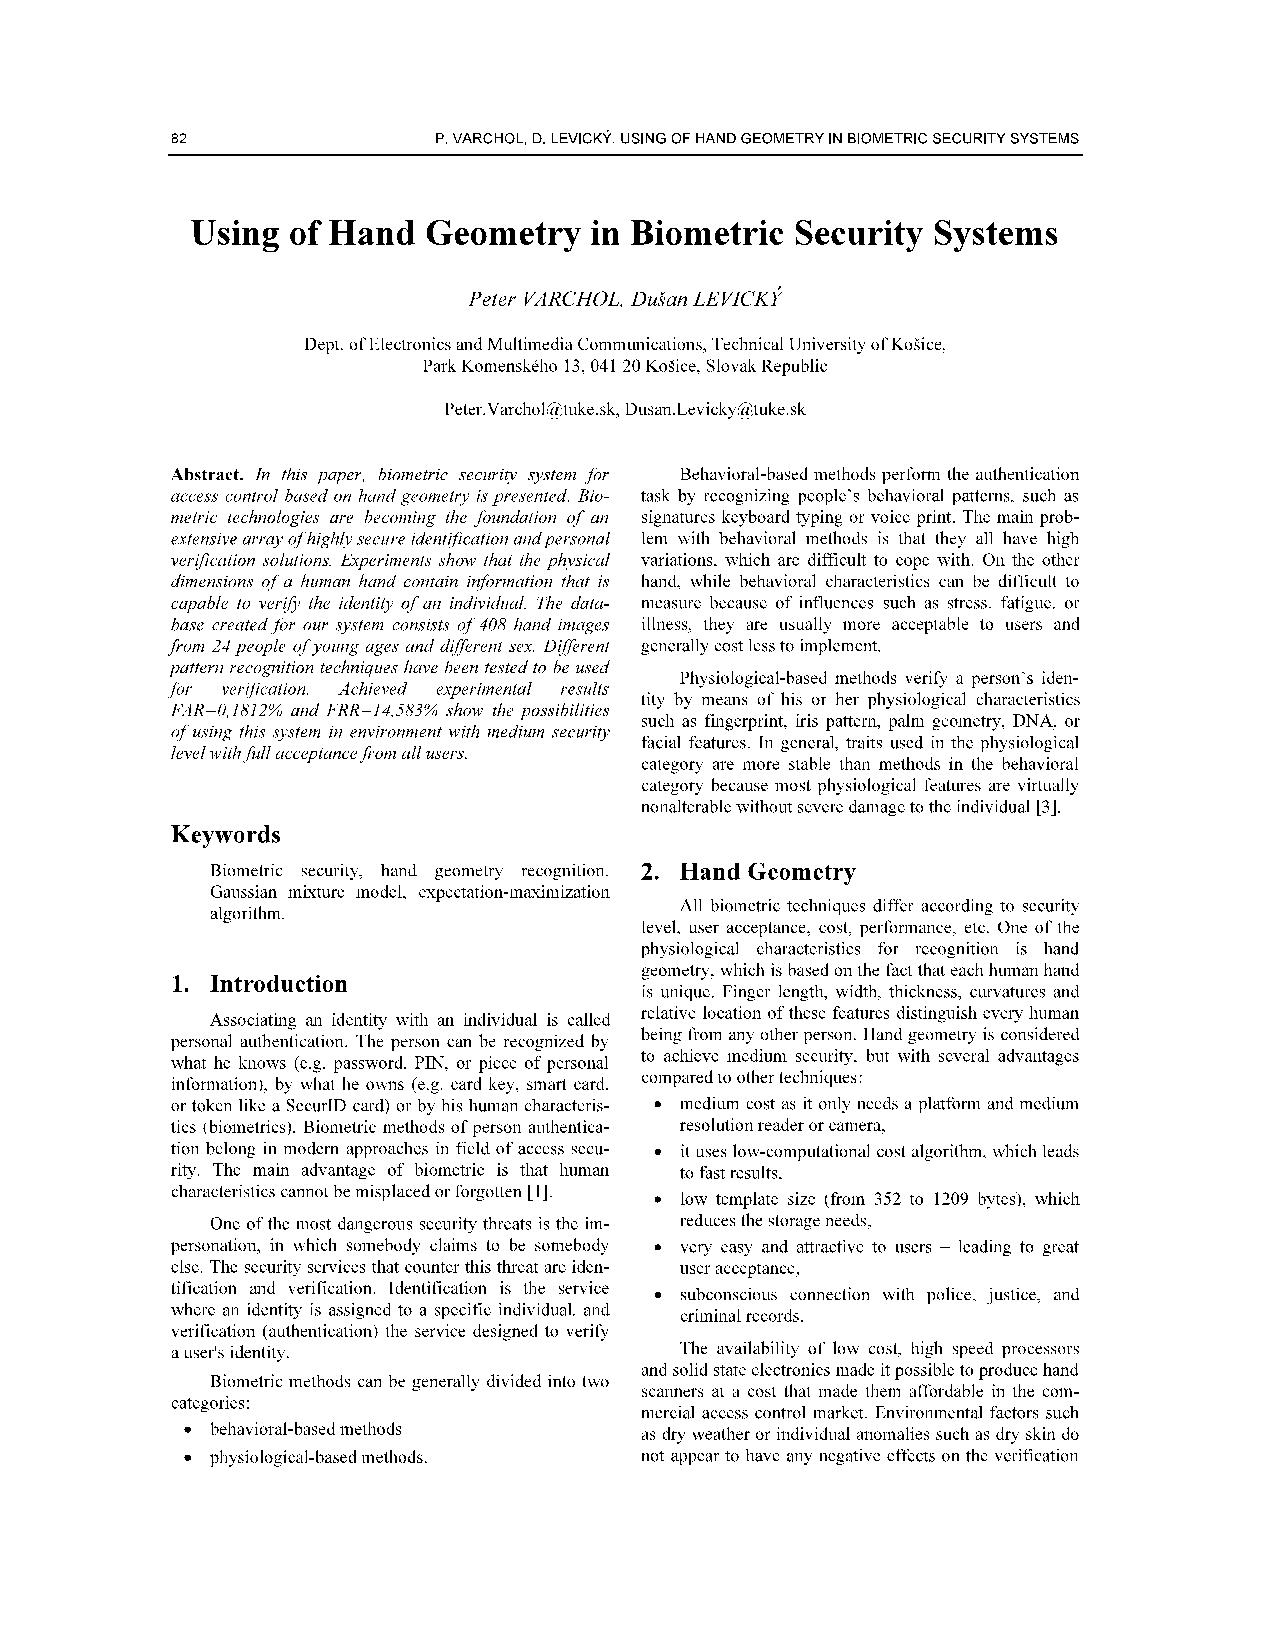 Using of Hand Geometry in Biometric Security Systems 12